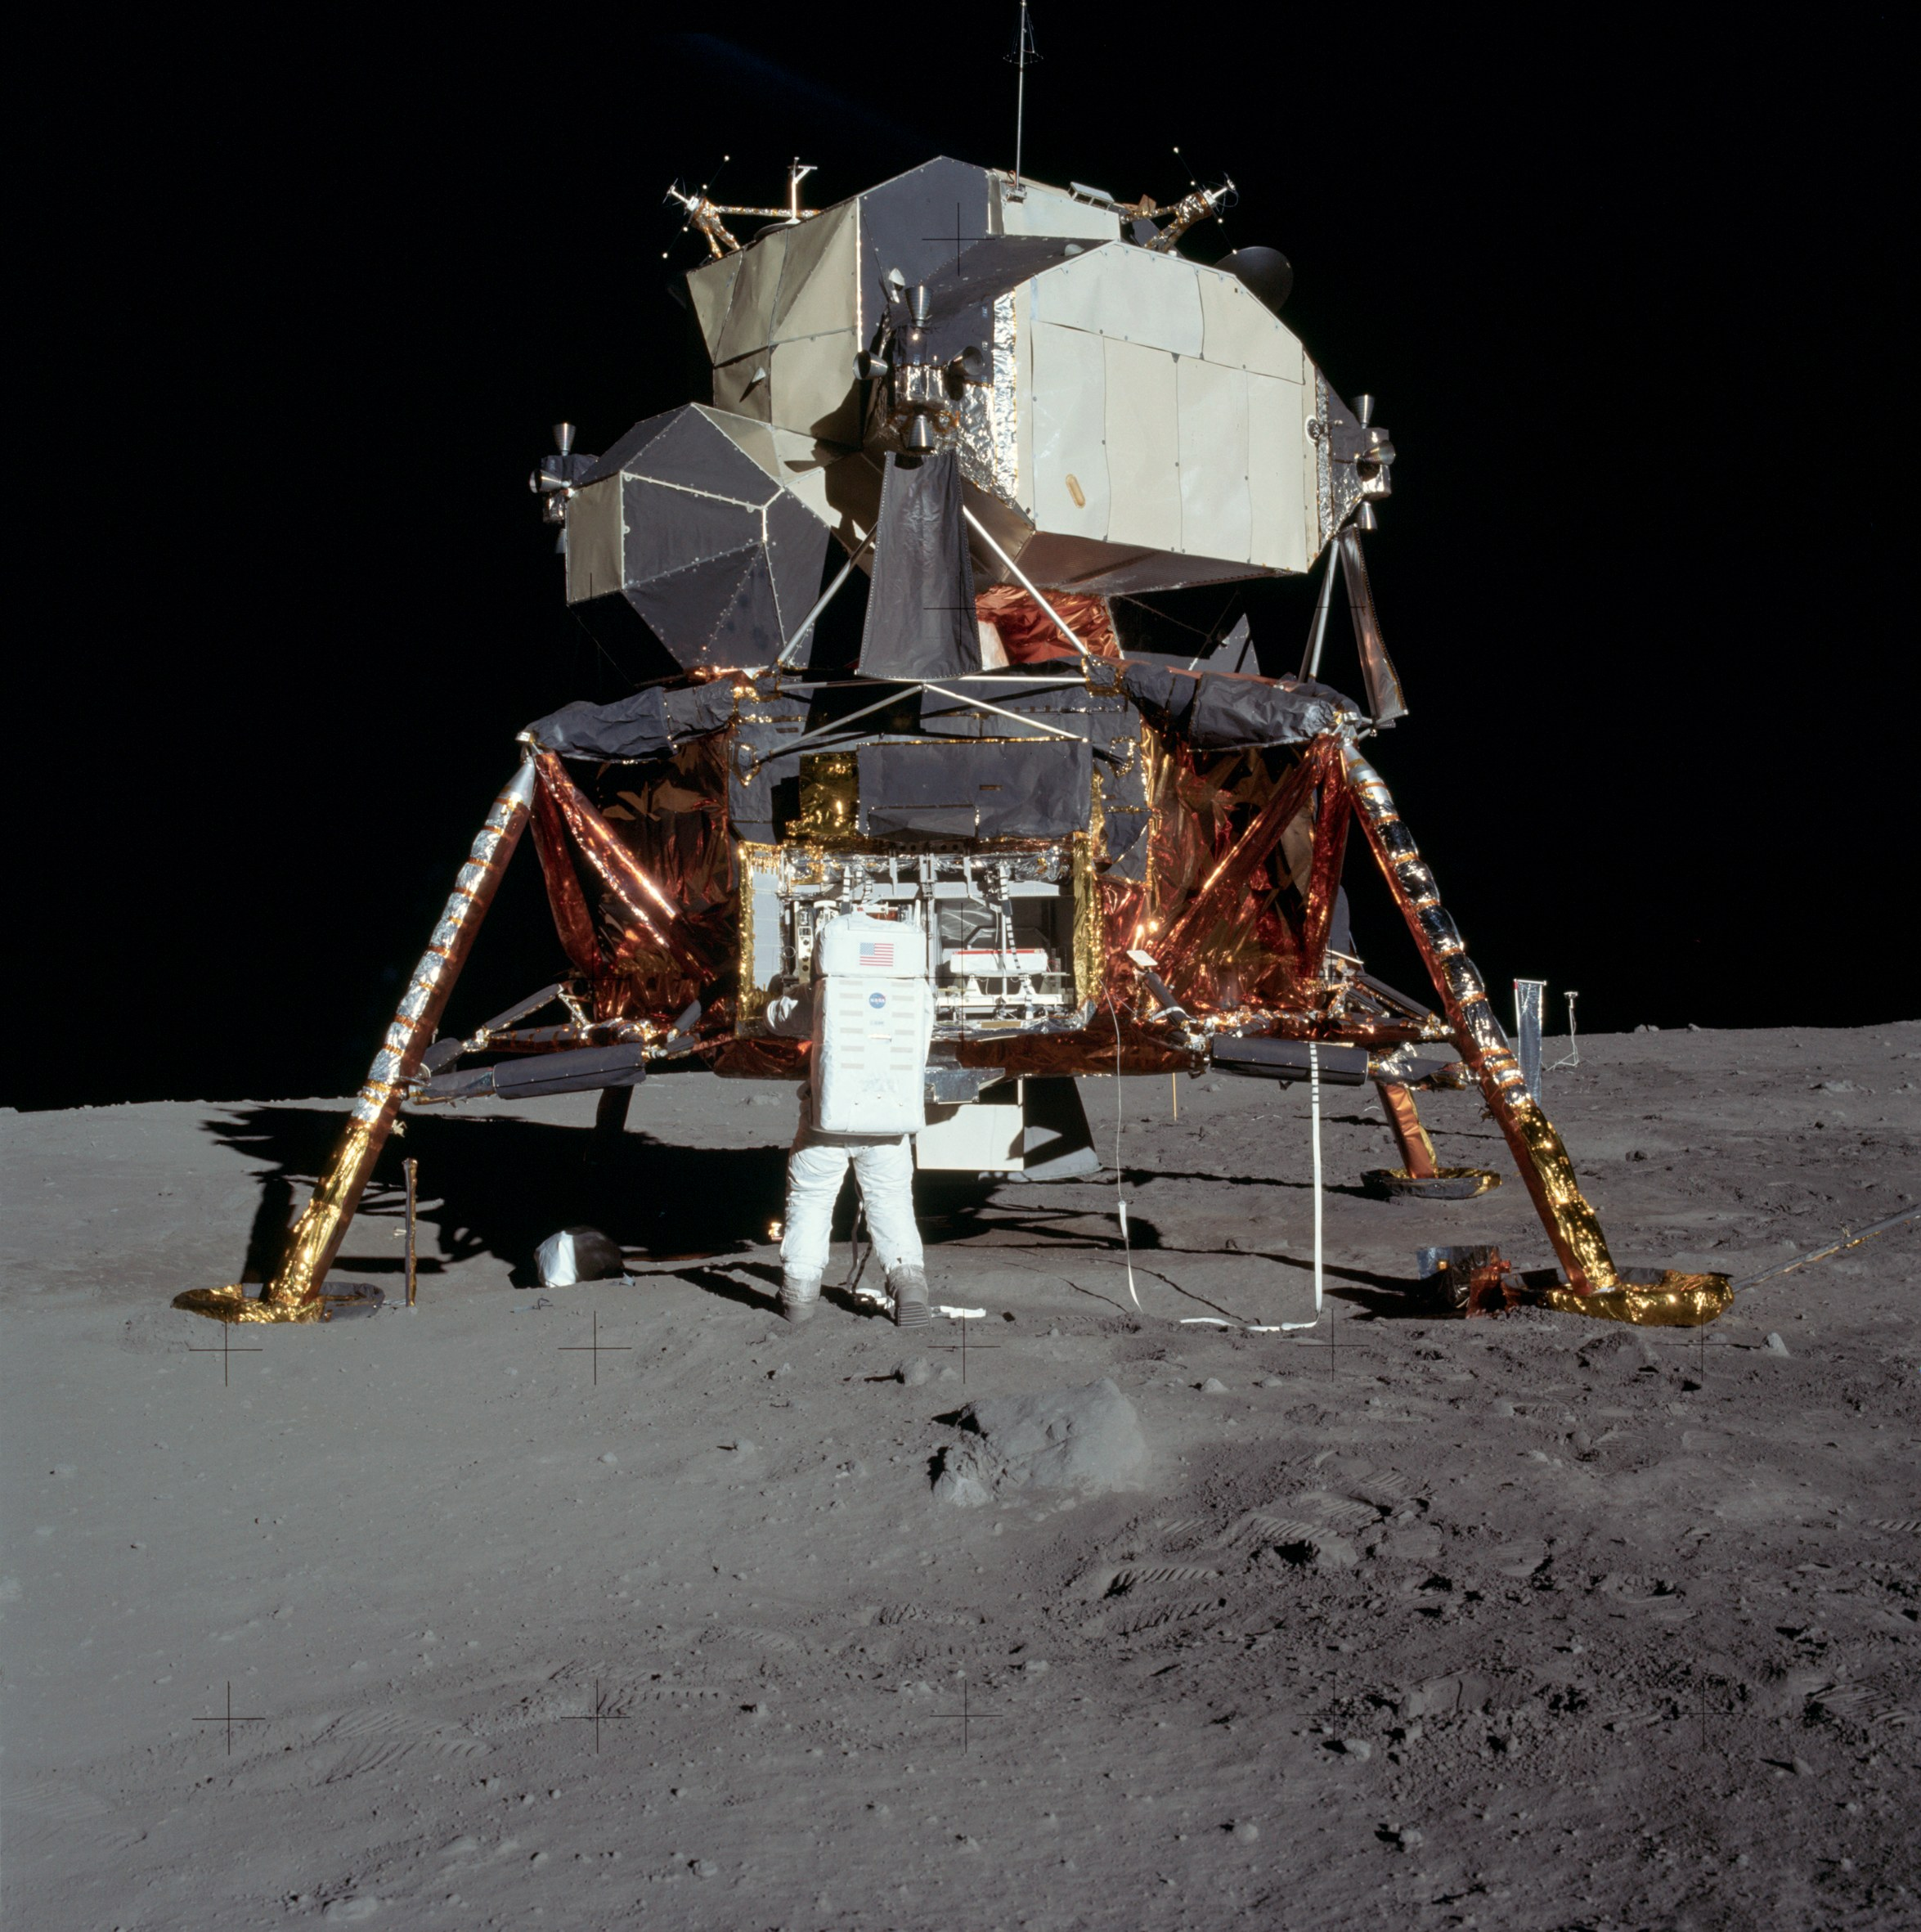 Apollo Lunar Module - NASA